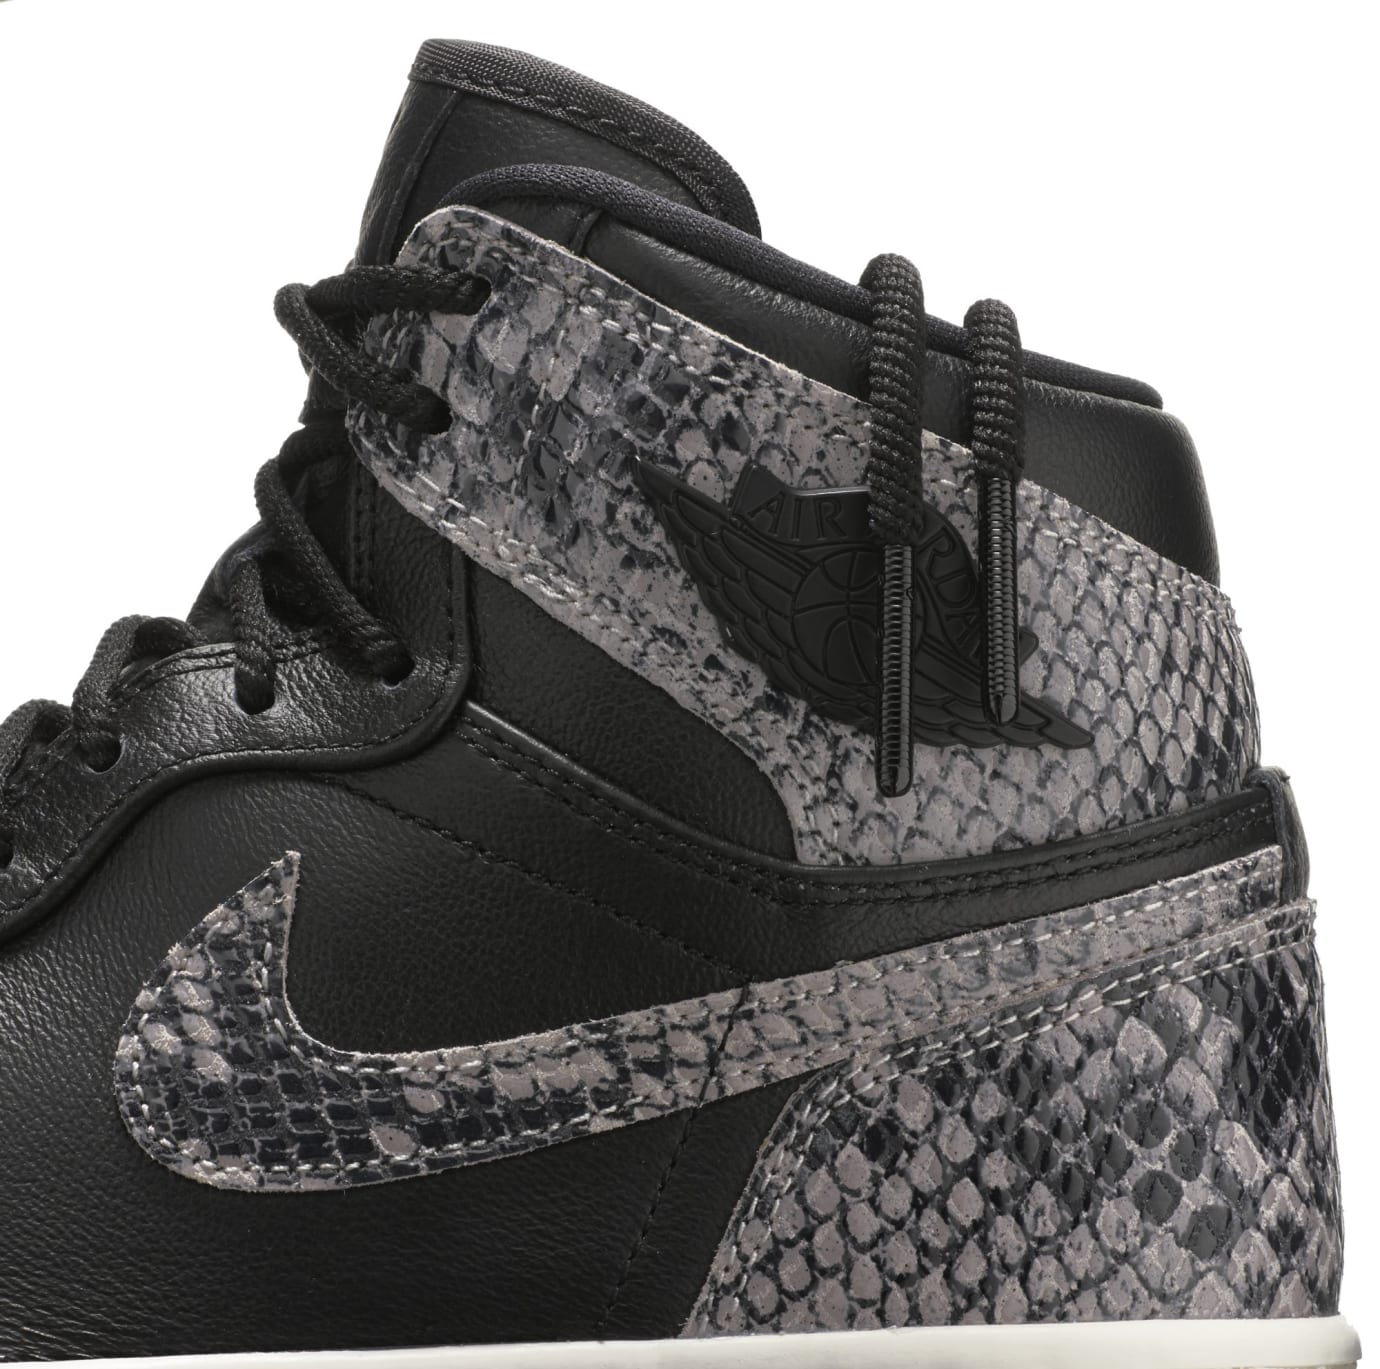 new arrival 82aac 72a74 Image via Nike Air Jordan 1 Retro High Premium Women s Snake  Black Phantom   AH7389-014